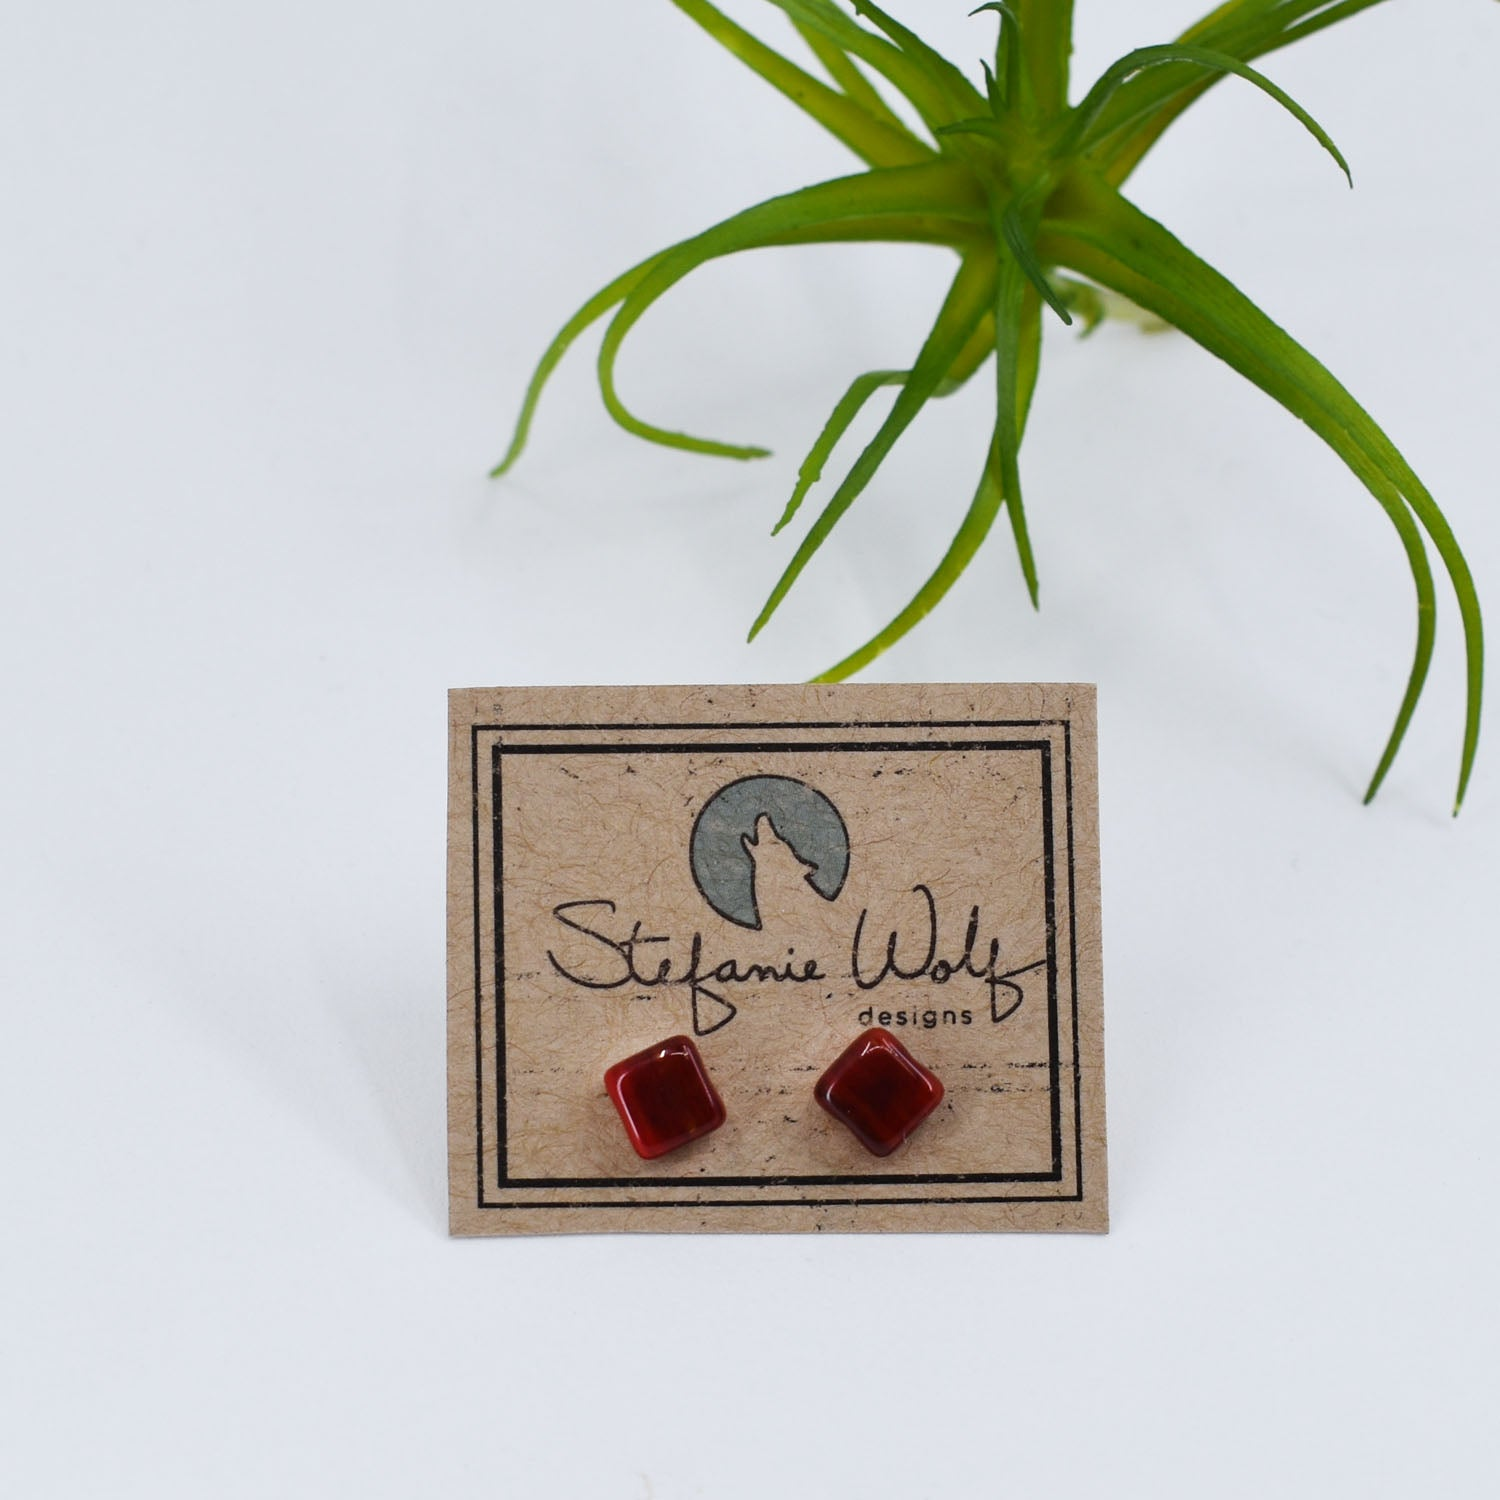 Tiny Stud Earrings in Dark Red